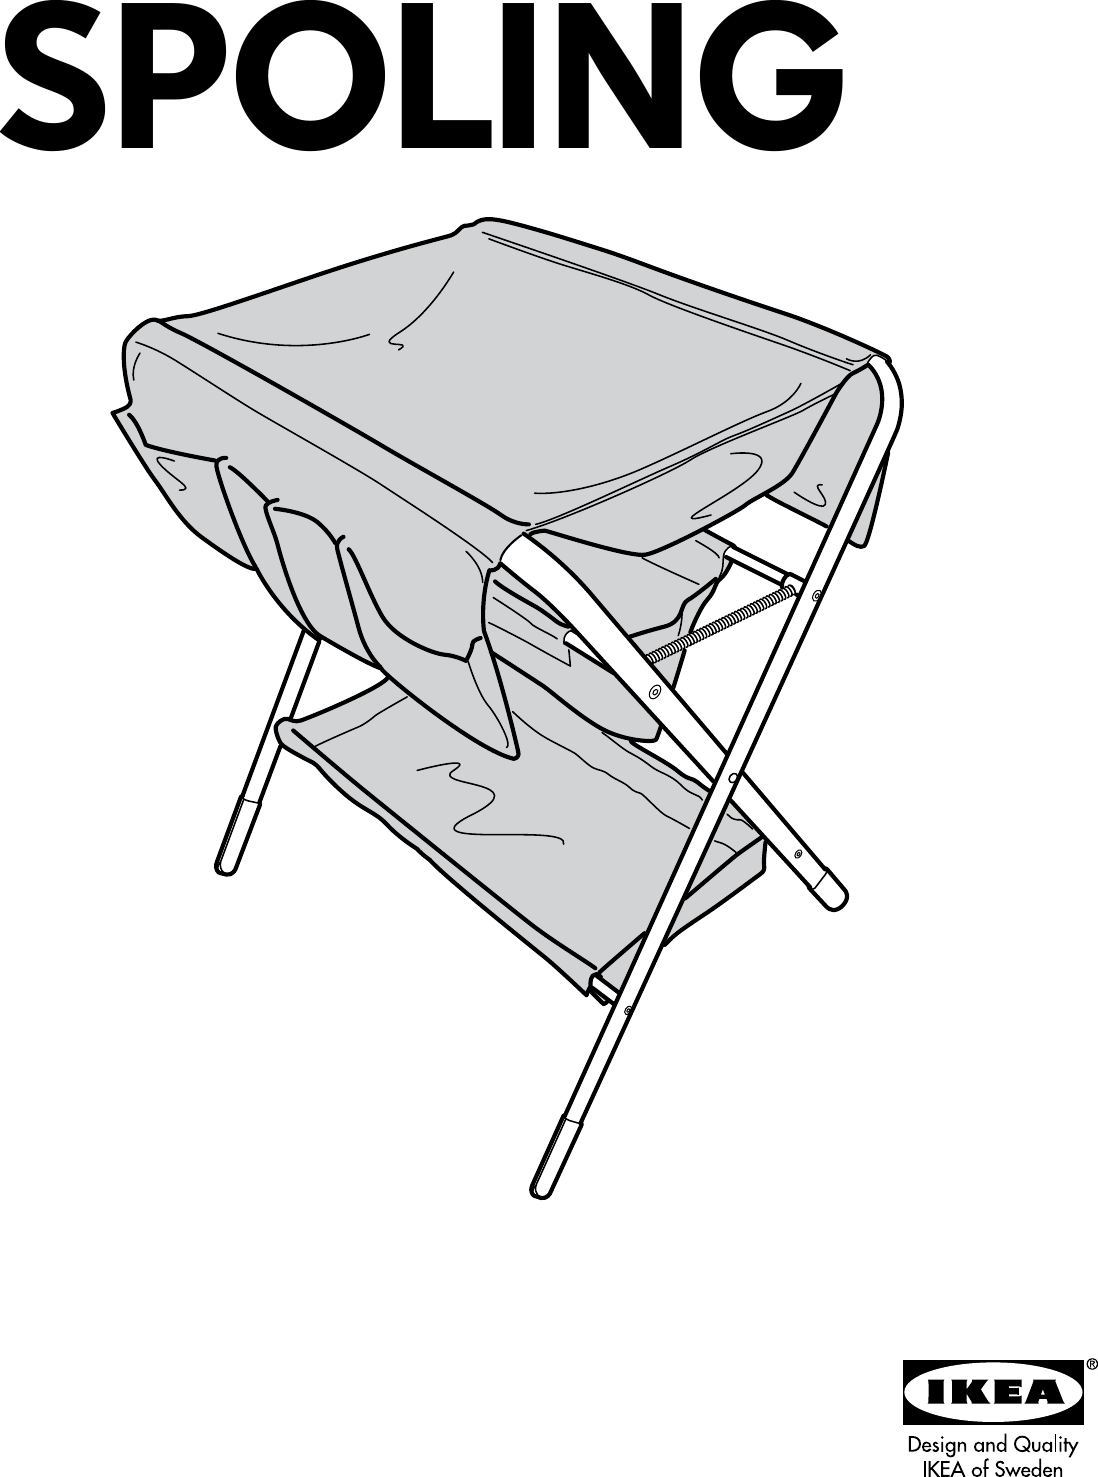 Ikea Spoling Changing Table Embly